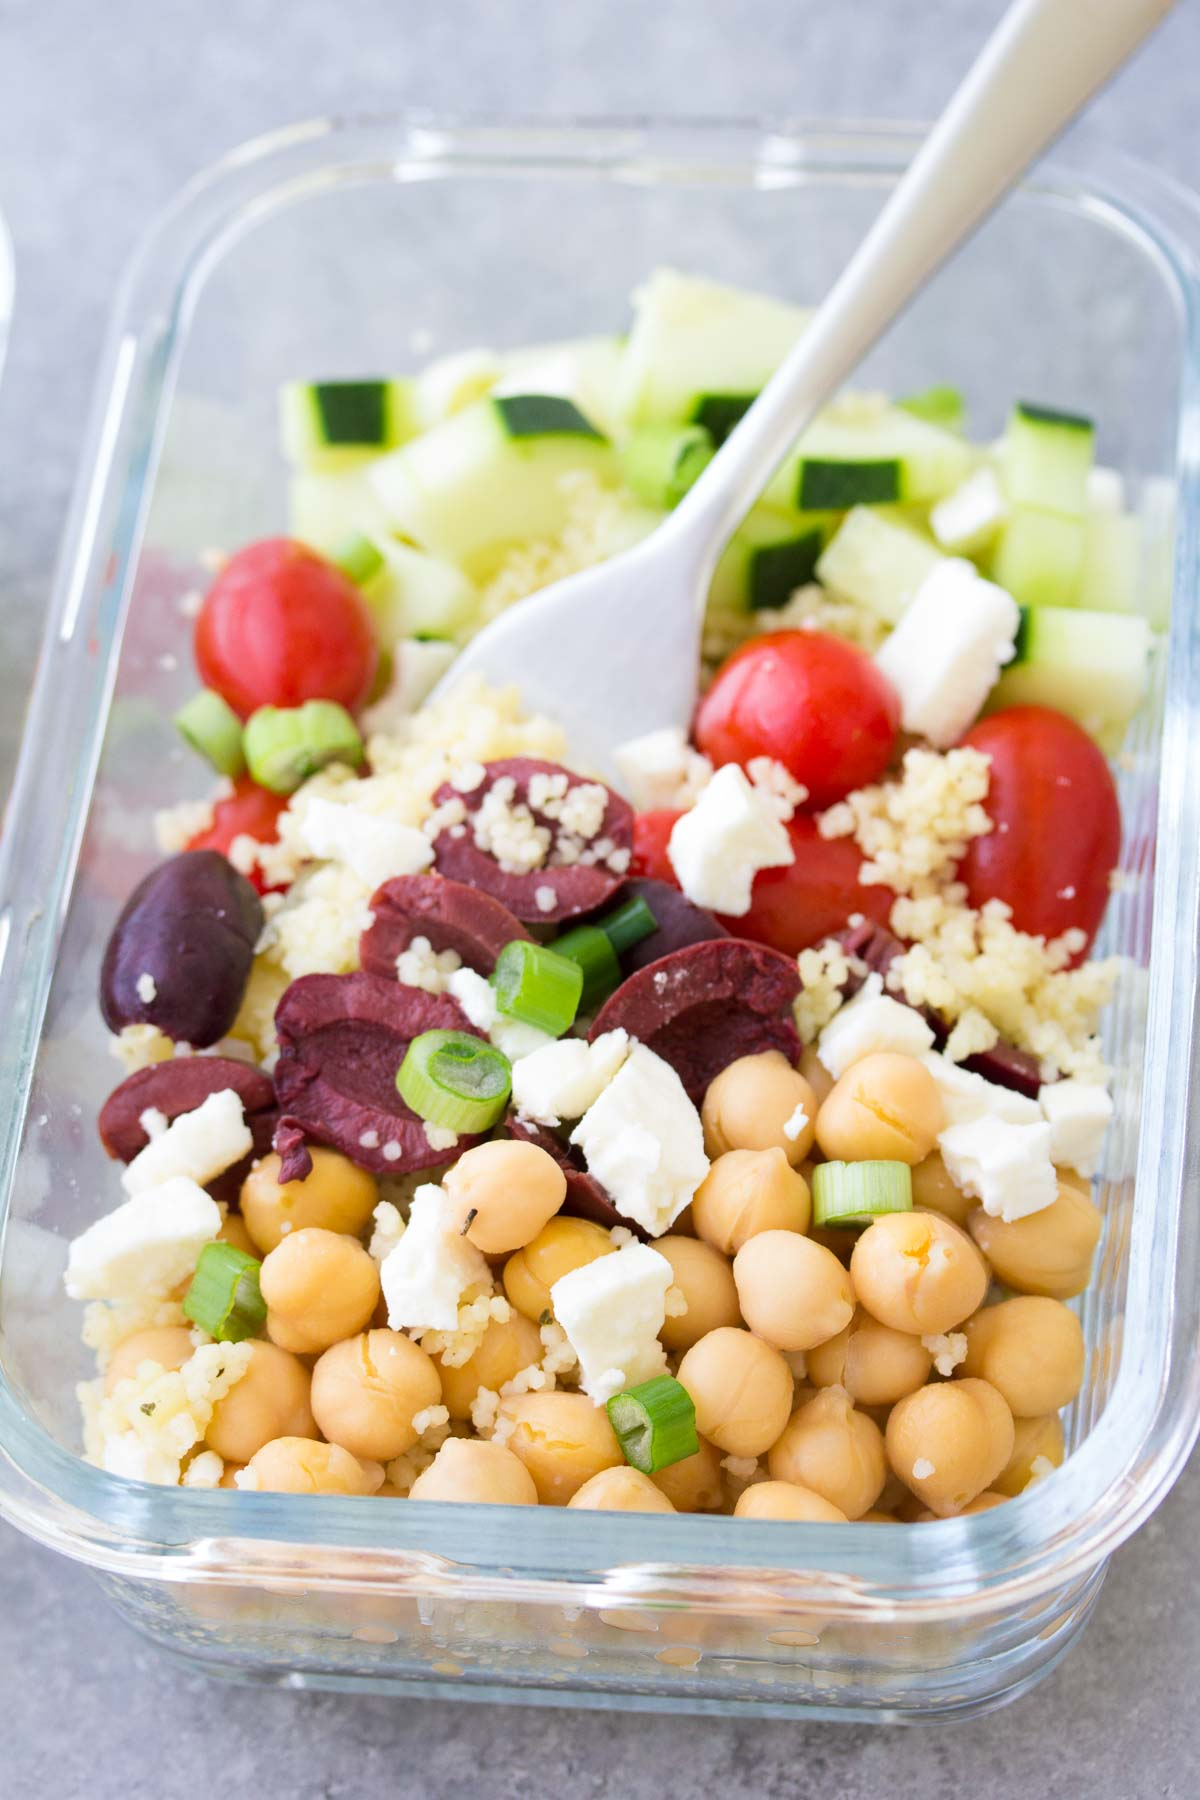 This Meal Prep Chickpea Salad is a healthy, vegetarian make ahead lunch. These lunch bowls are filled with healthy vegetables and chickpeas add protein! You can also serve this as a side salad at a BBQ.